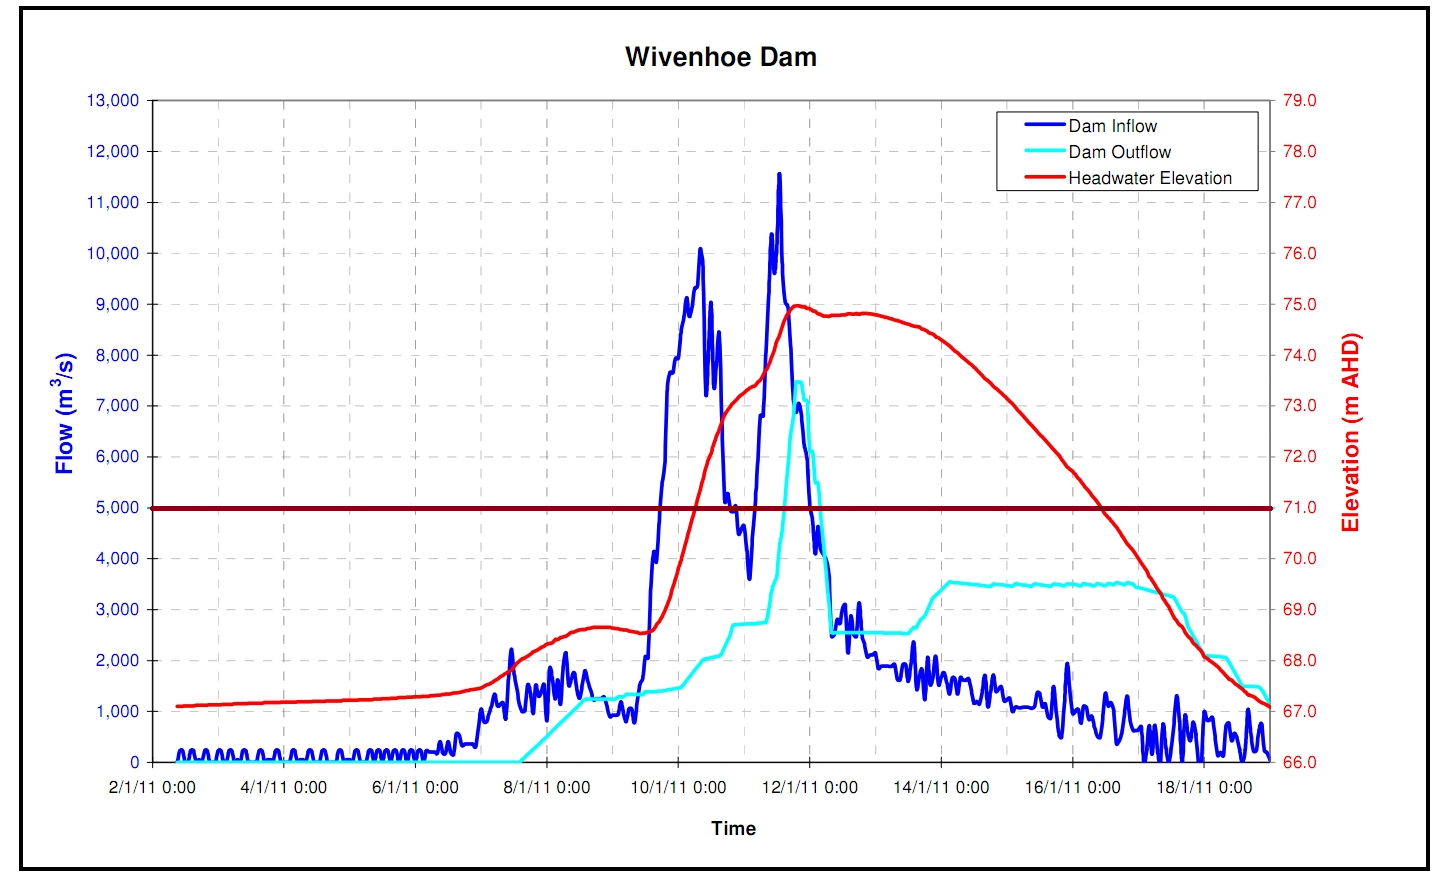 Christys unconvincing congressional testimony the helidon peak is associated with the first peak of inflows into wivenhoe dam dark blue line the one at lowood with the second peak nvjuhfo Image collections